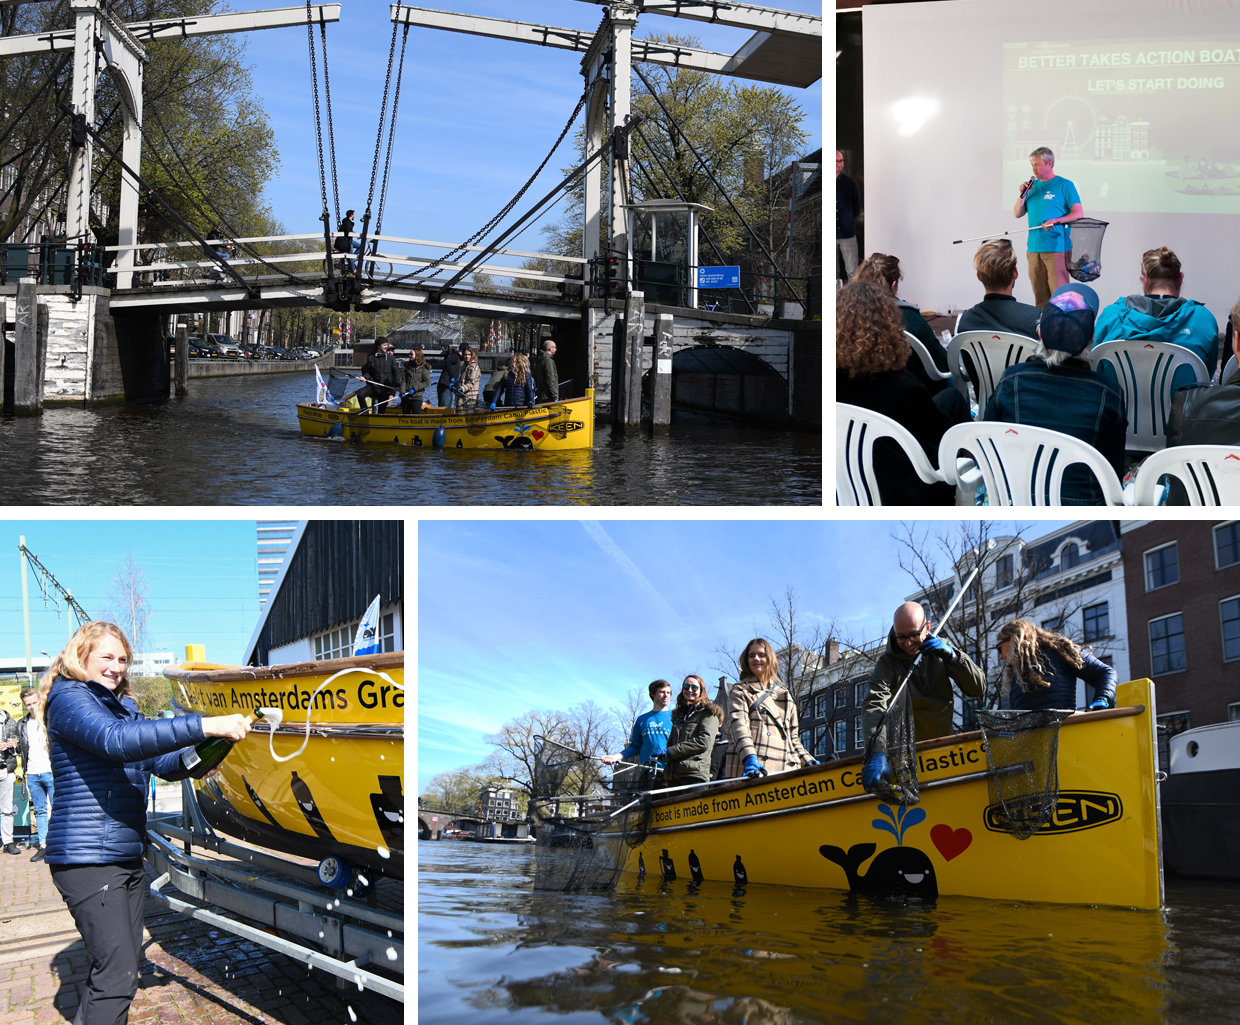 KEEN launches Better Takes Action boat tour